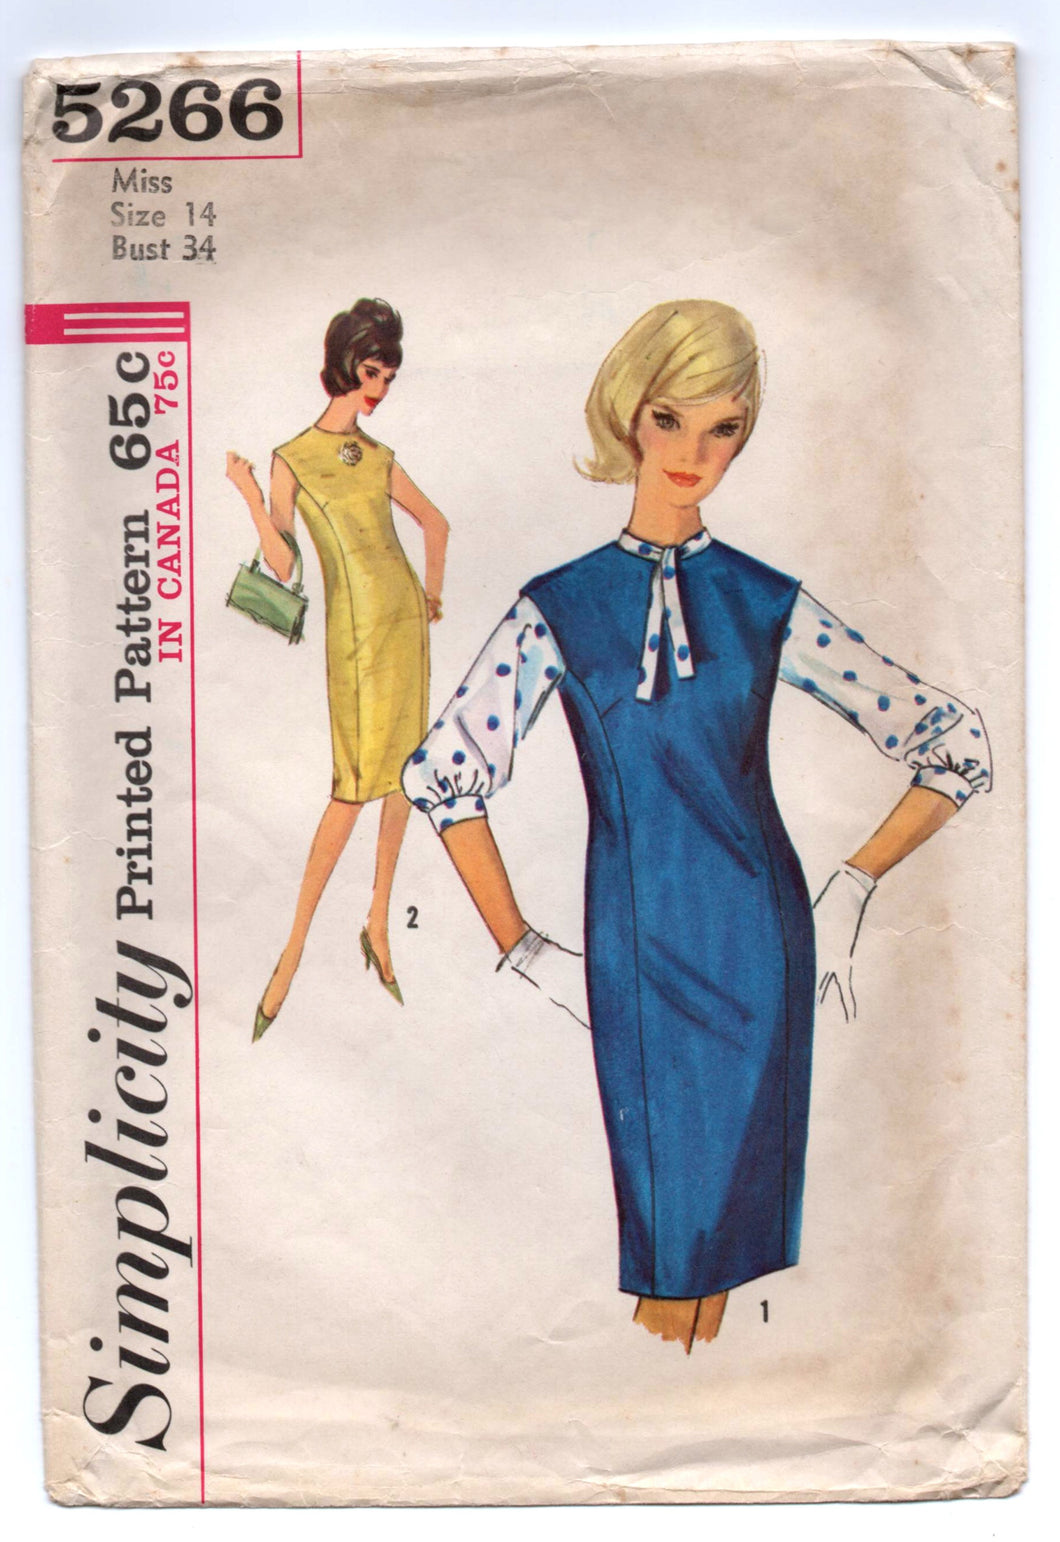 1960's Simplicity One-Piece Mod Dress and Blouse Pattern - Bust 34